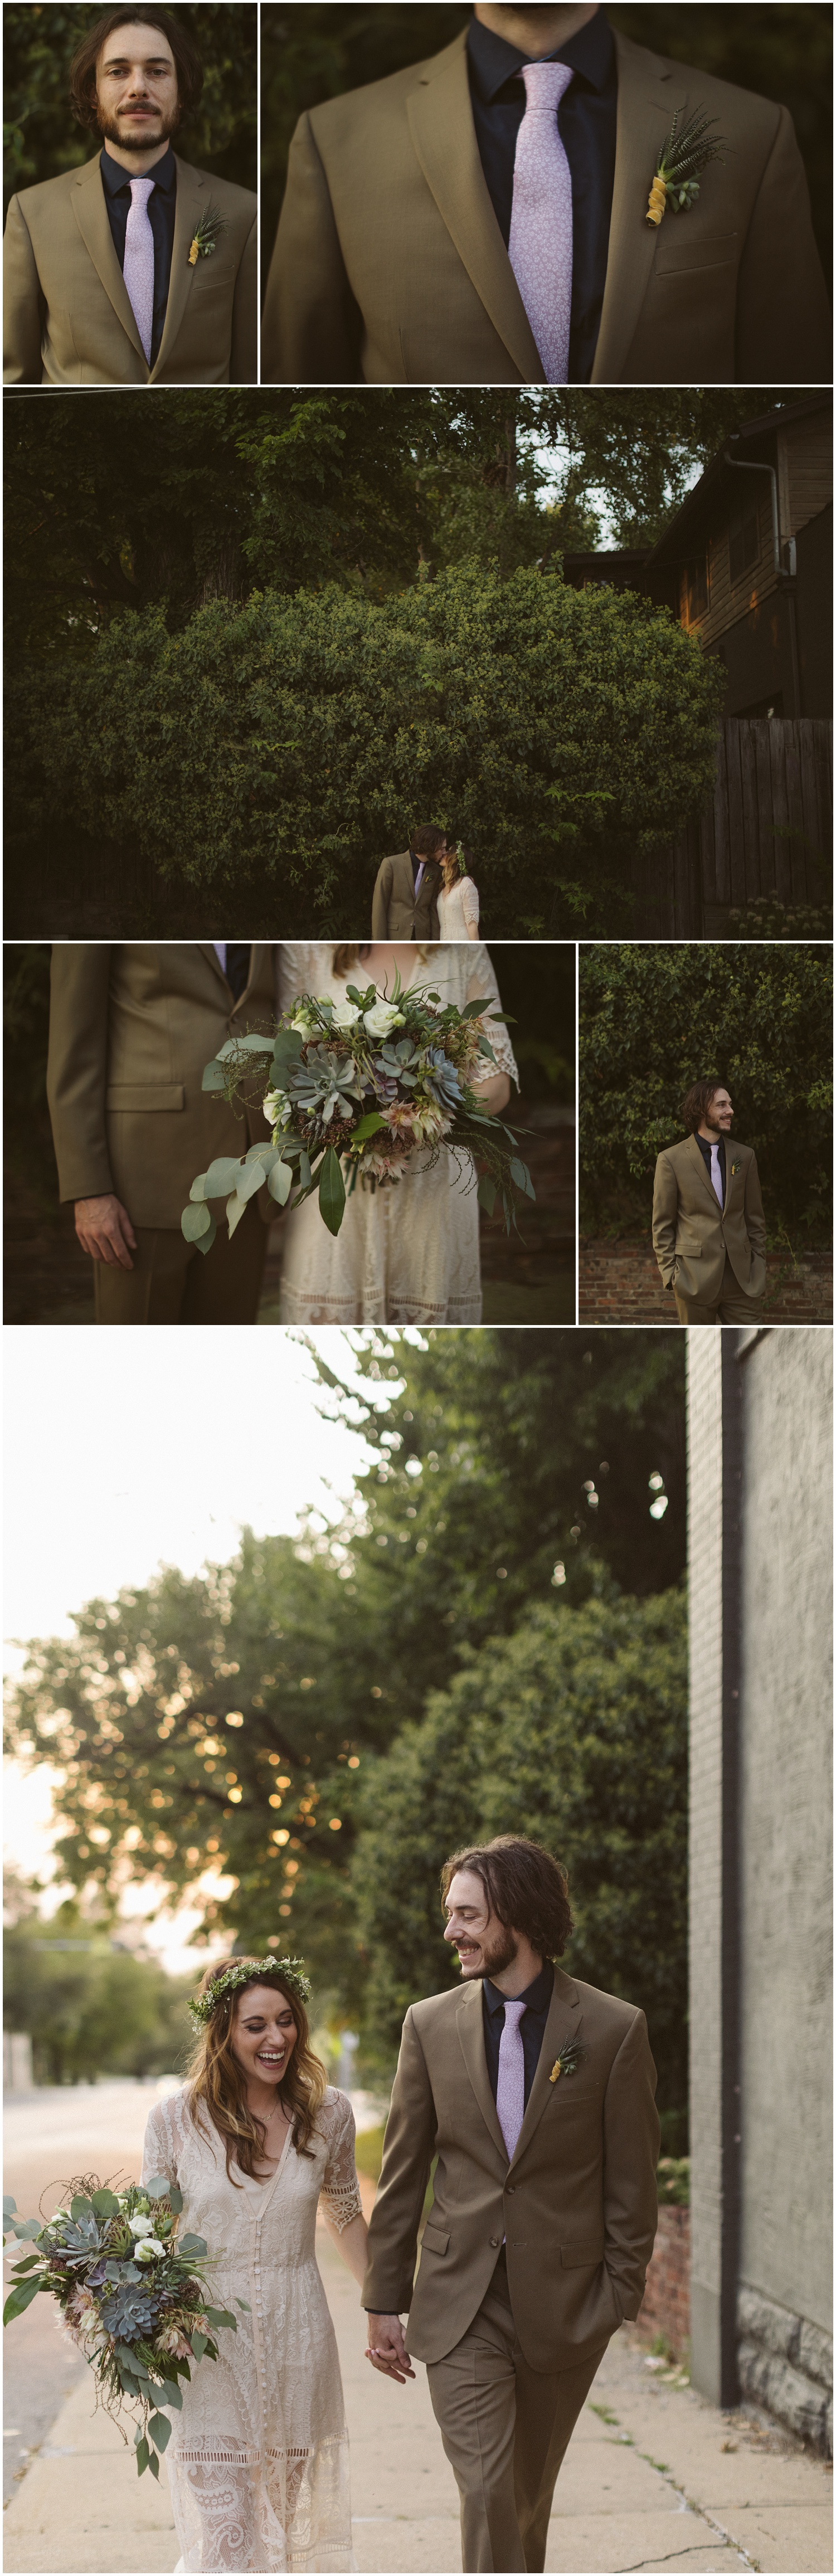 Lynn + Tim Kansas City Scout Statue Intimate Wedding